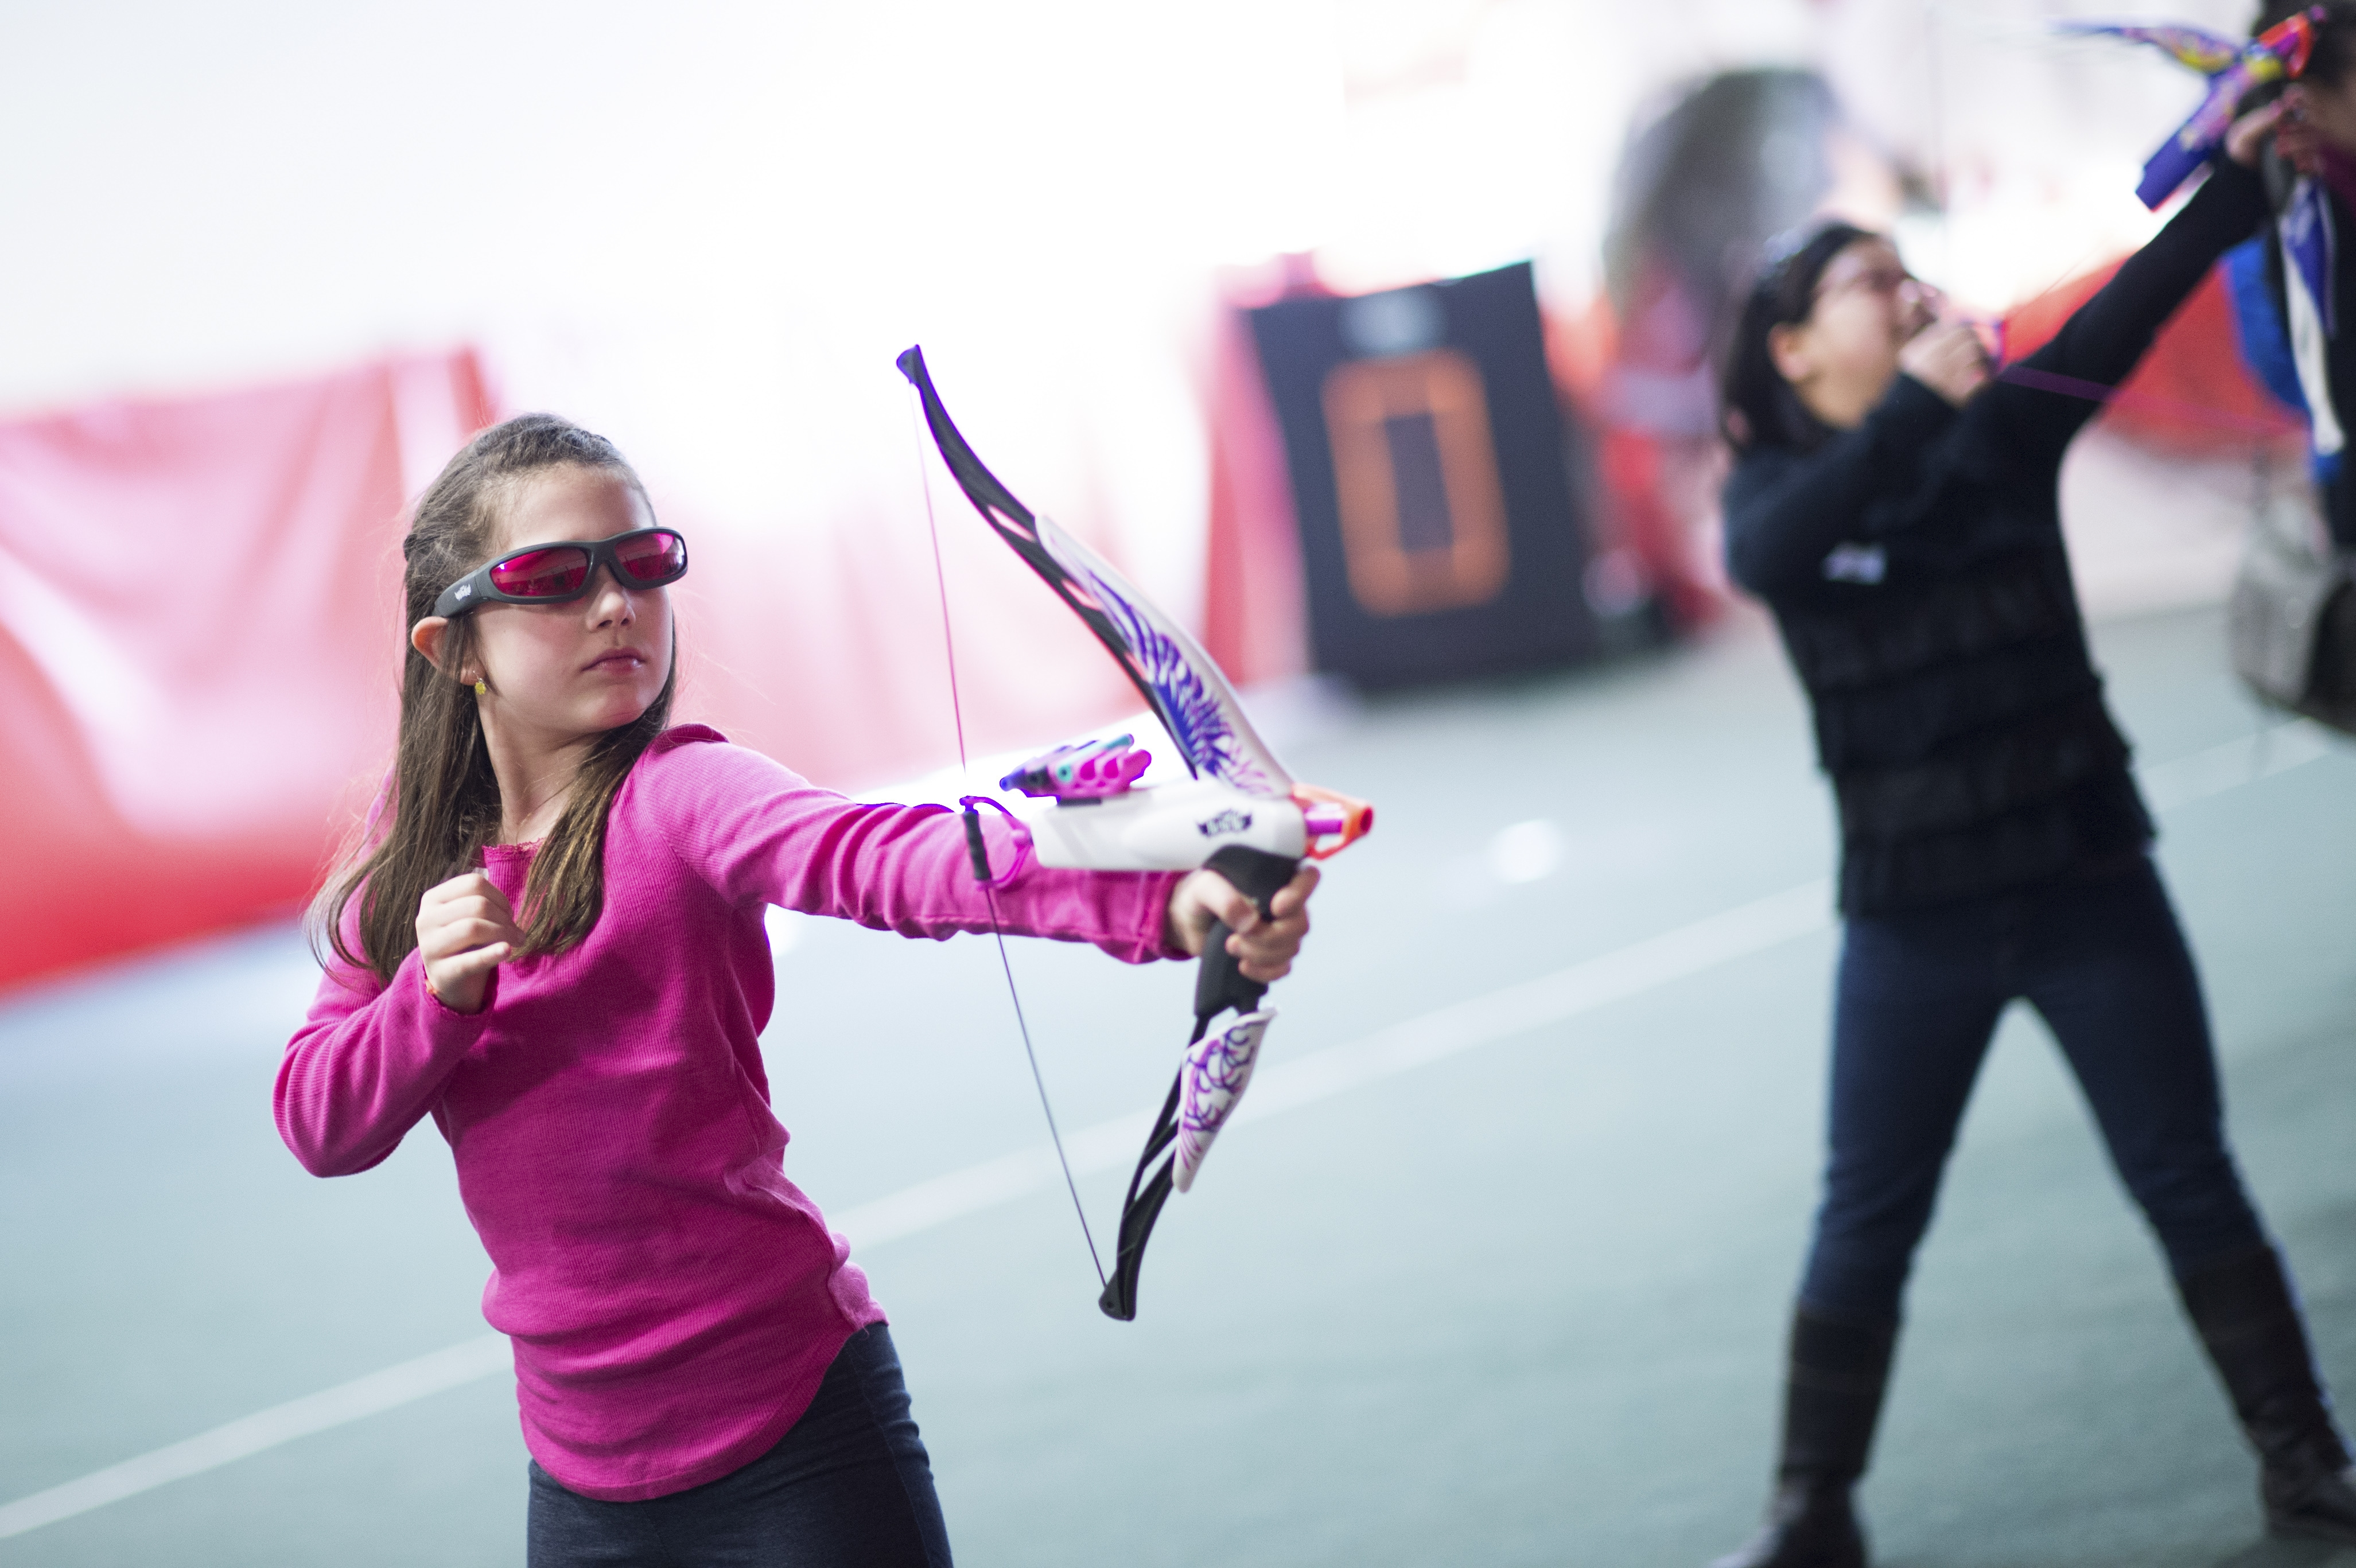 Mackenzie Medeiros, 9, tests the Nerf Rebelle Agent Bow at a facility near the Hasbro Headquarters in Pawtucket, R.I., last week.